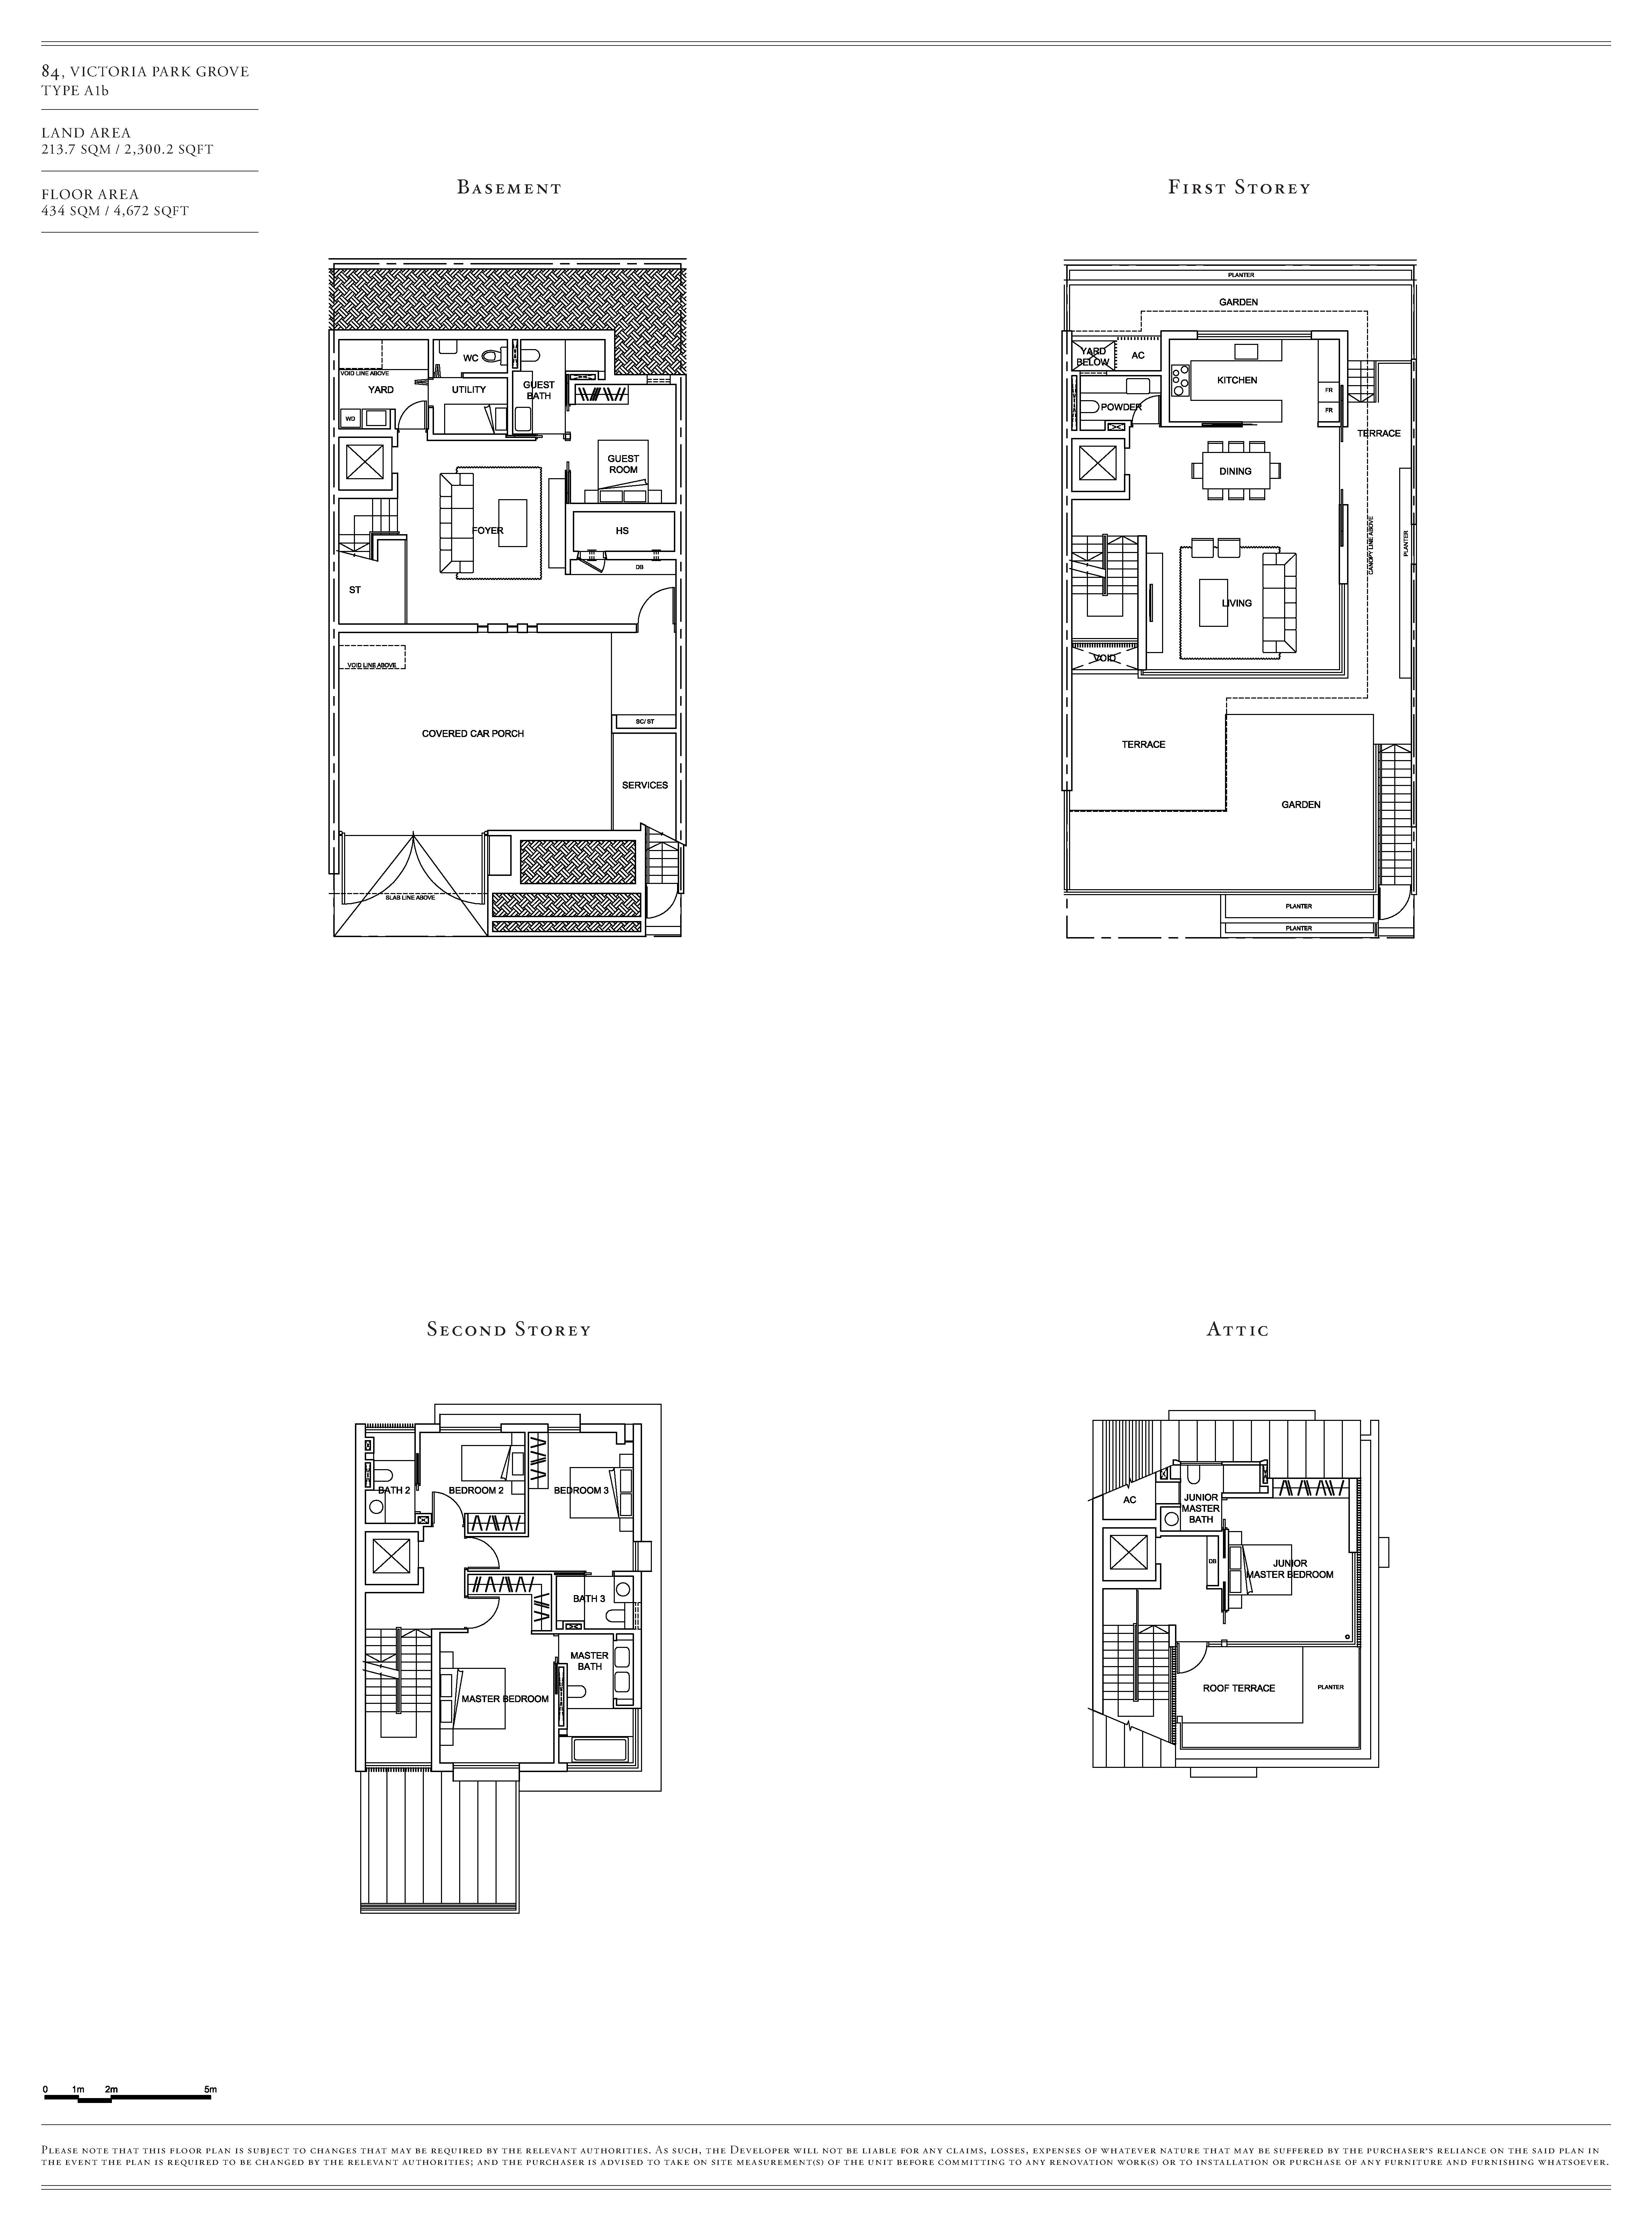 Victoria Park Villas House 84 Type A1b Floor Plans